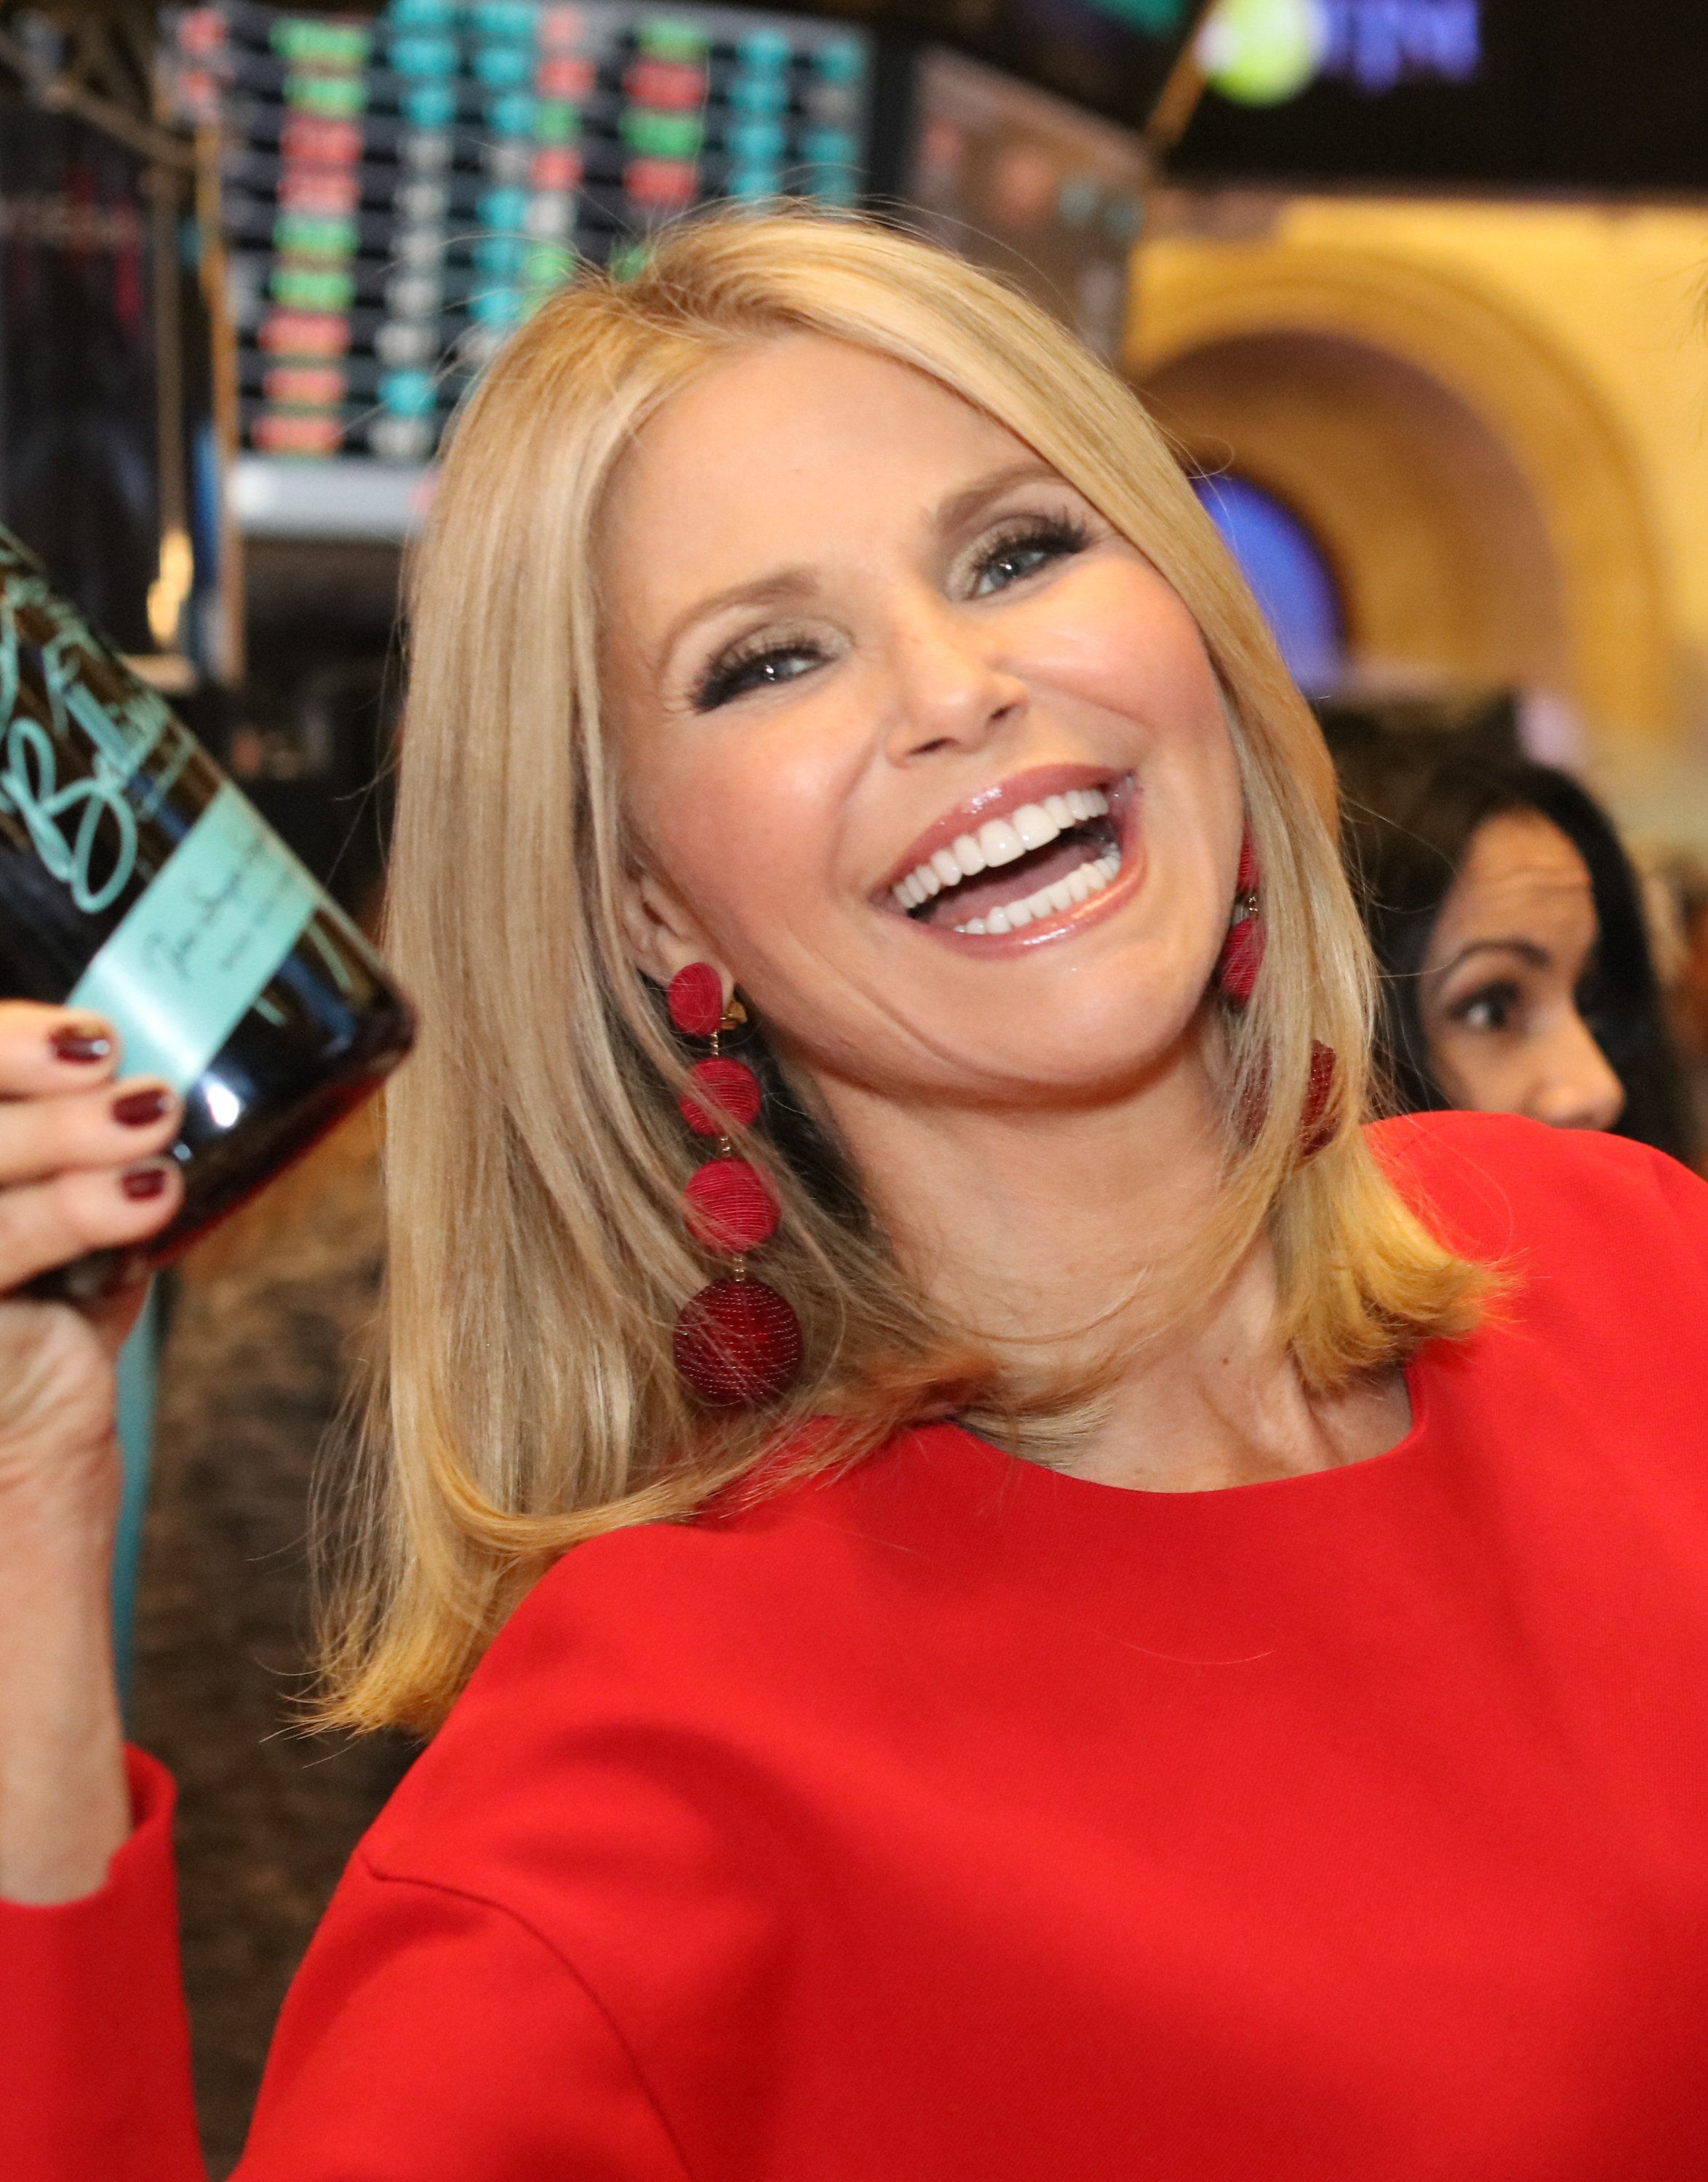 NEW YORK, NY - DECEMBER 01:  (EXCLUSIVE COVERAGE) Model, actress and entrepreneur Christie Brinkley poses on the trading floor after ringing the closing bell for the launch of her new Prosecco, Bellisima during the 93rd annual lighting of the NYSE Christmas Tree at the New York Stock Exchange on December 1, 2016 in New York City.  (Photo by Myrna M. Suarez/FilmMagic)